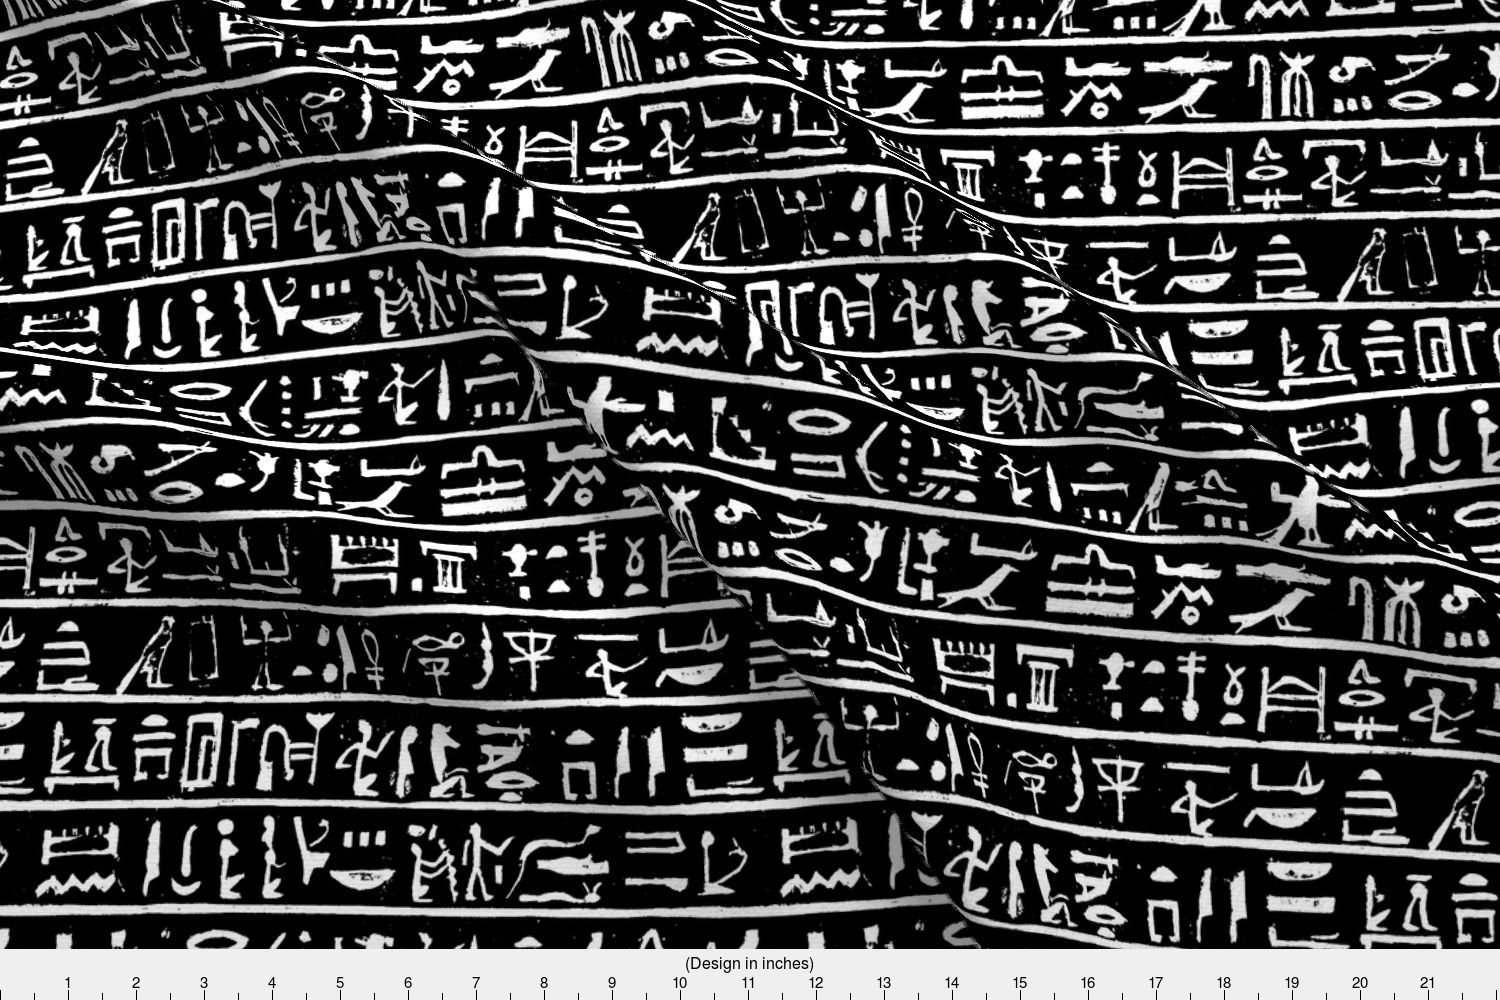 Spoonflower Ancient Egypt Fabric - Ancient Egypt Egyptian Hieroglyphics  Ancient Writing Civilization Language Ancient - by Thinlinetextiles Printed  on